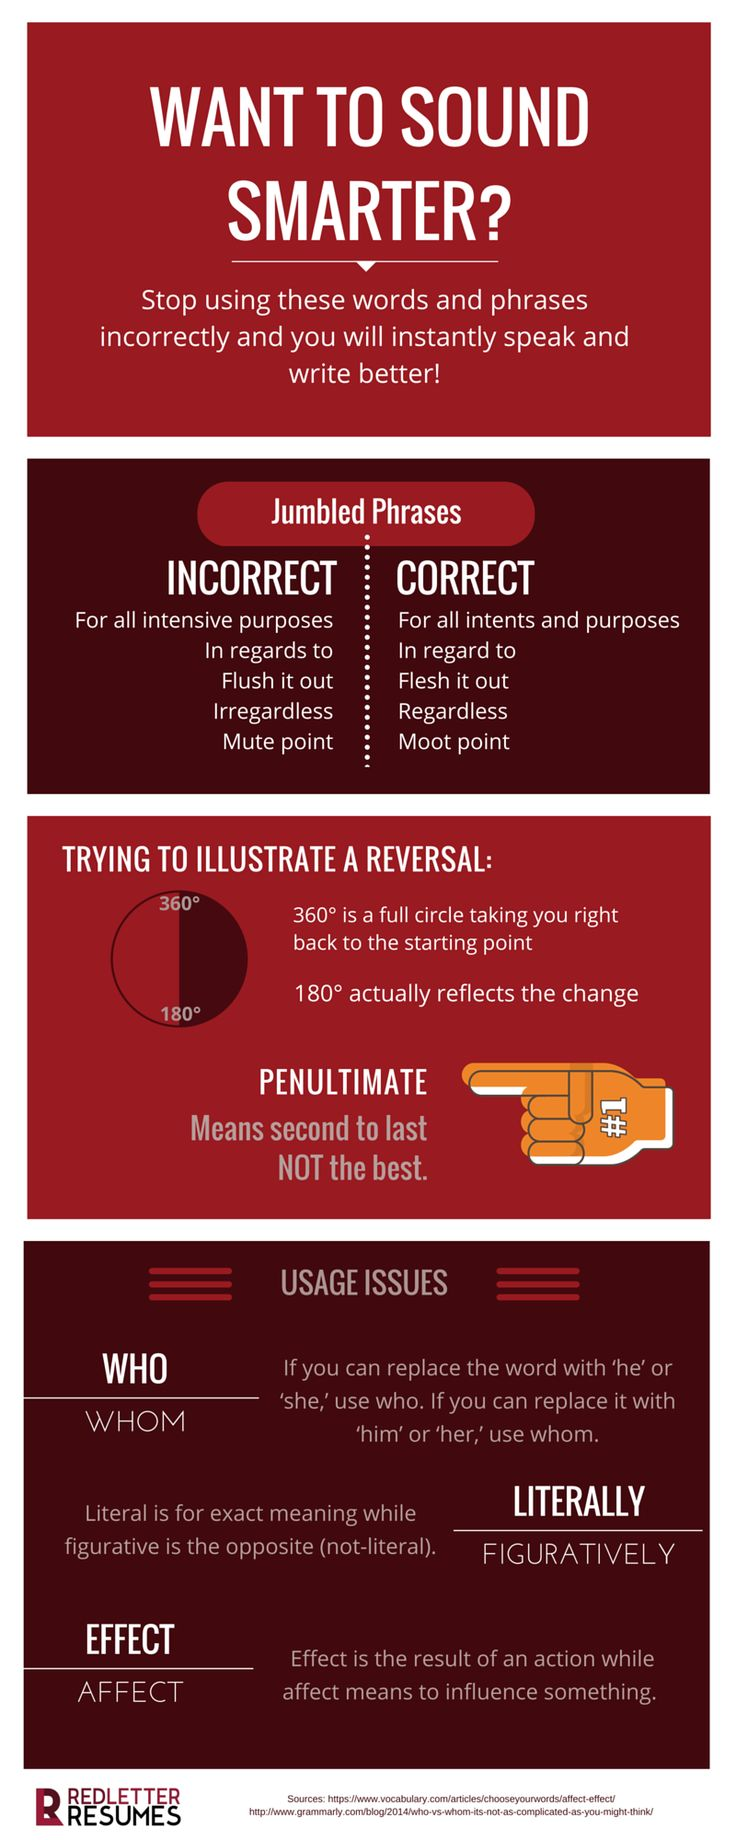 Want to Sound Smarter? 11 commonly misused phrases that even smart people get wrong! Red Letter Resumes | Infographic | www.redletterresumes.com